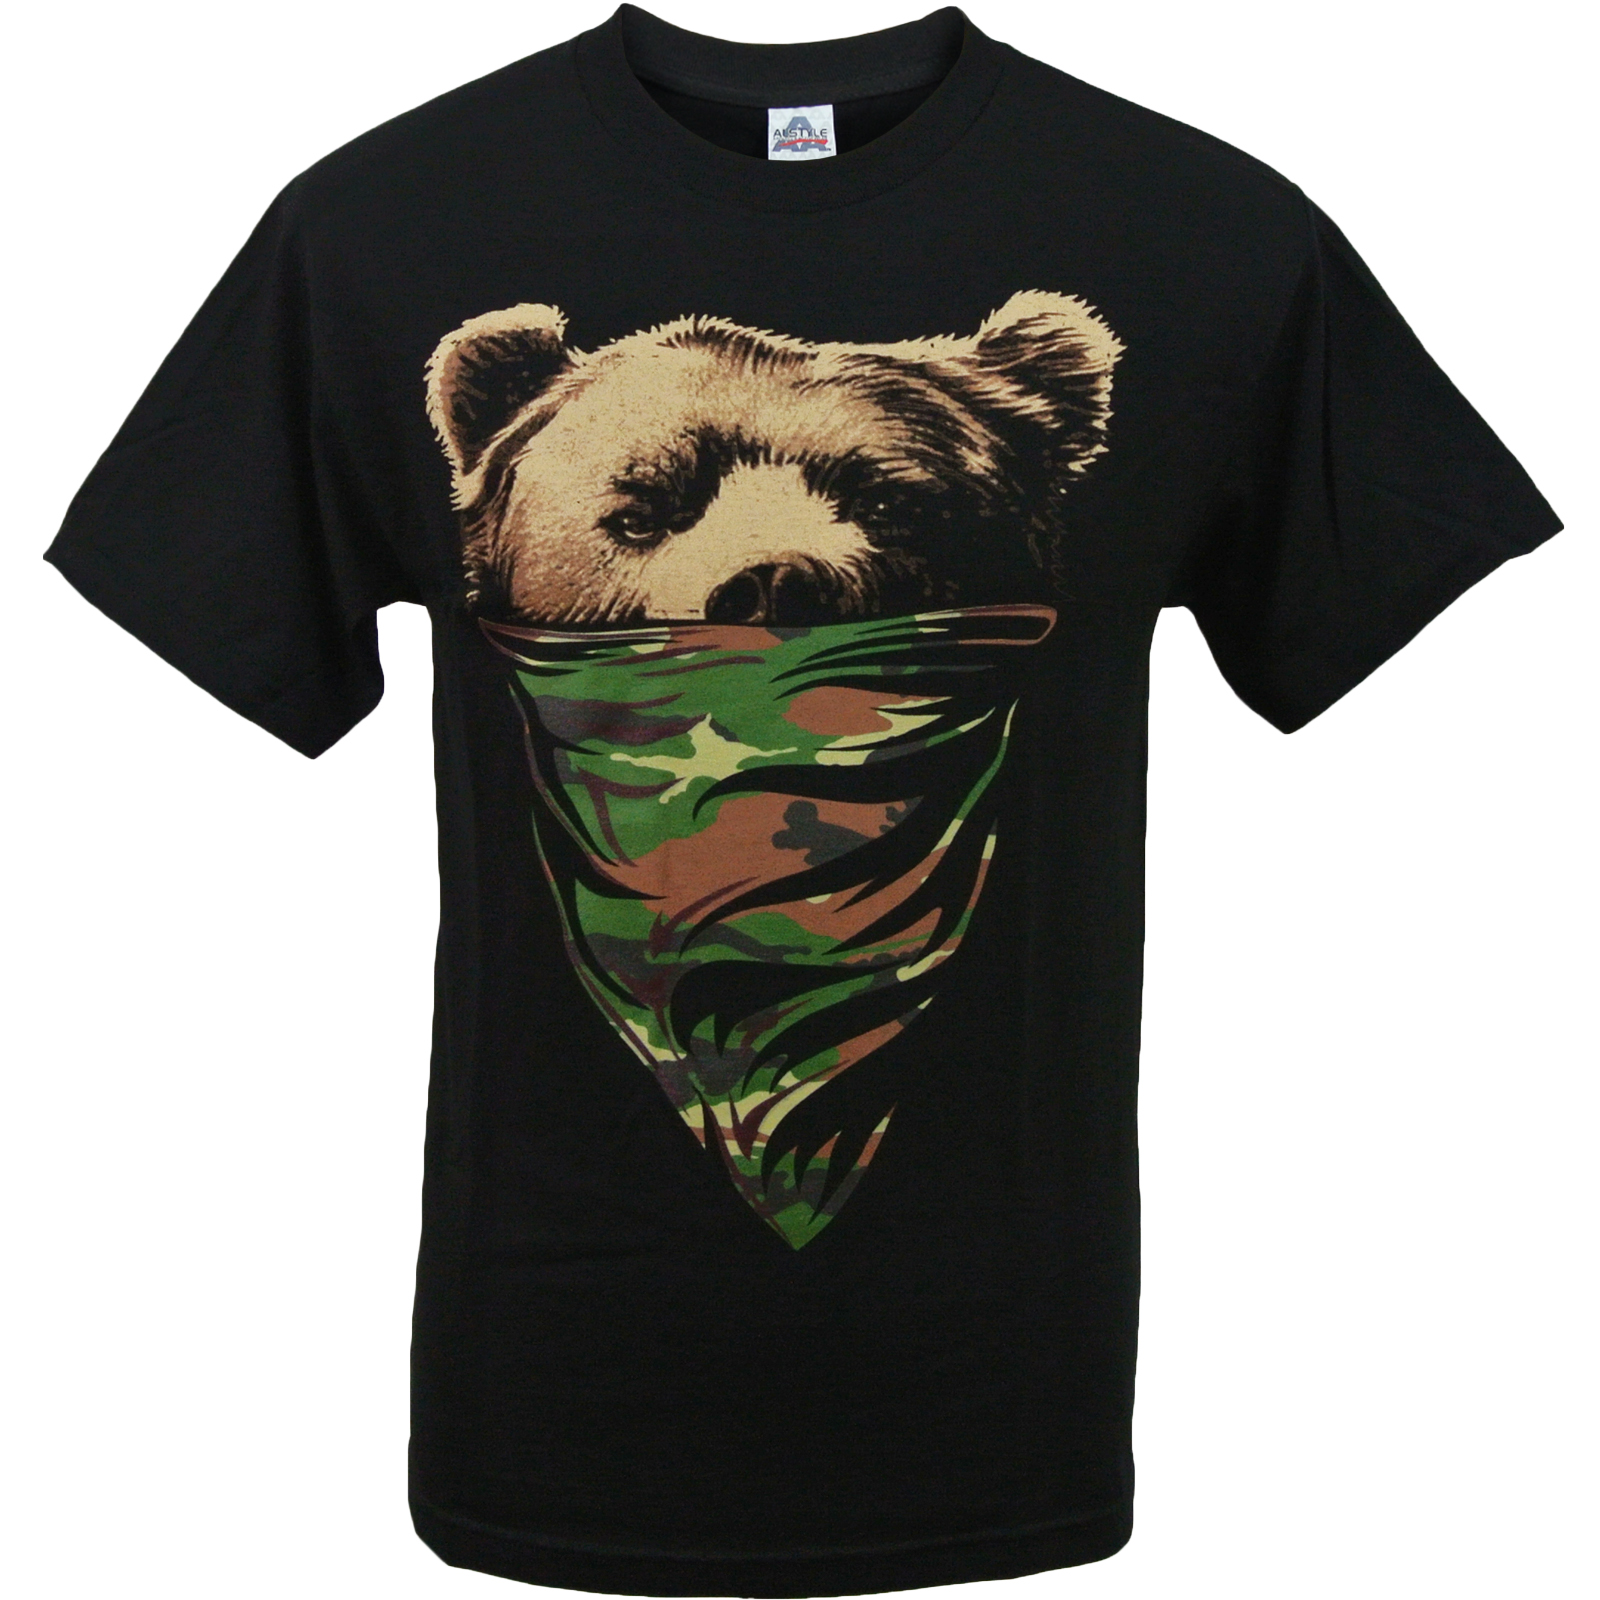 ovc california camouflage bandana bear mens t shirt ebay. Black Bedroom Furniture Sets. Home Design Ideas